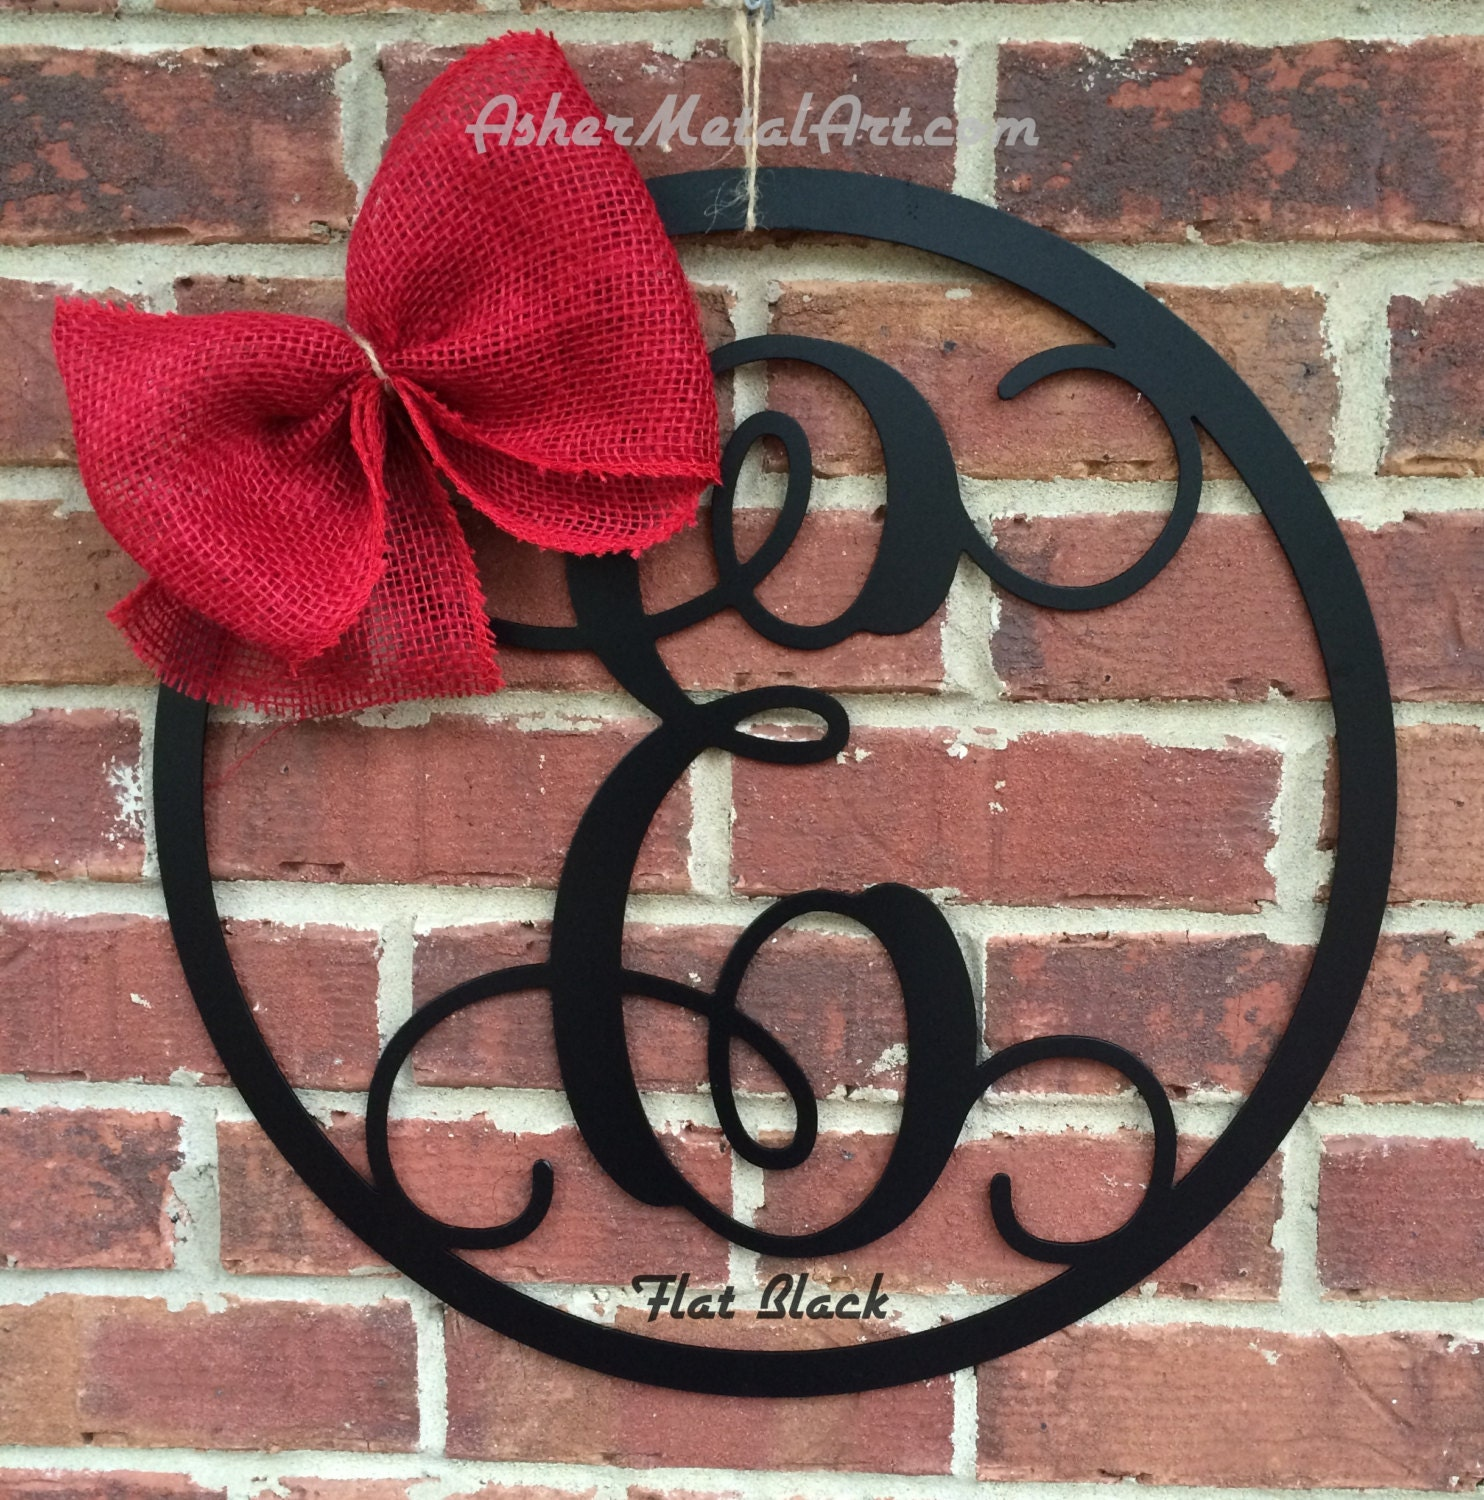 Metal Monogram Letters 18 Metal Monogram Letter With Circle Border Wreath